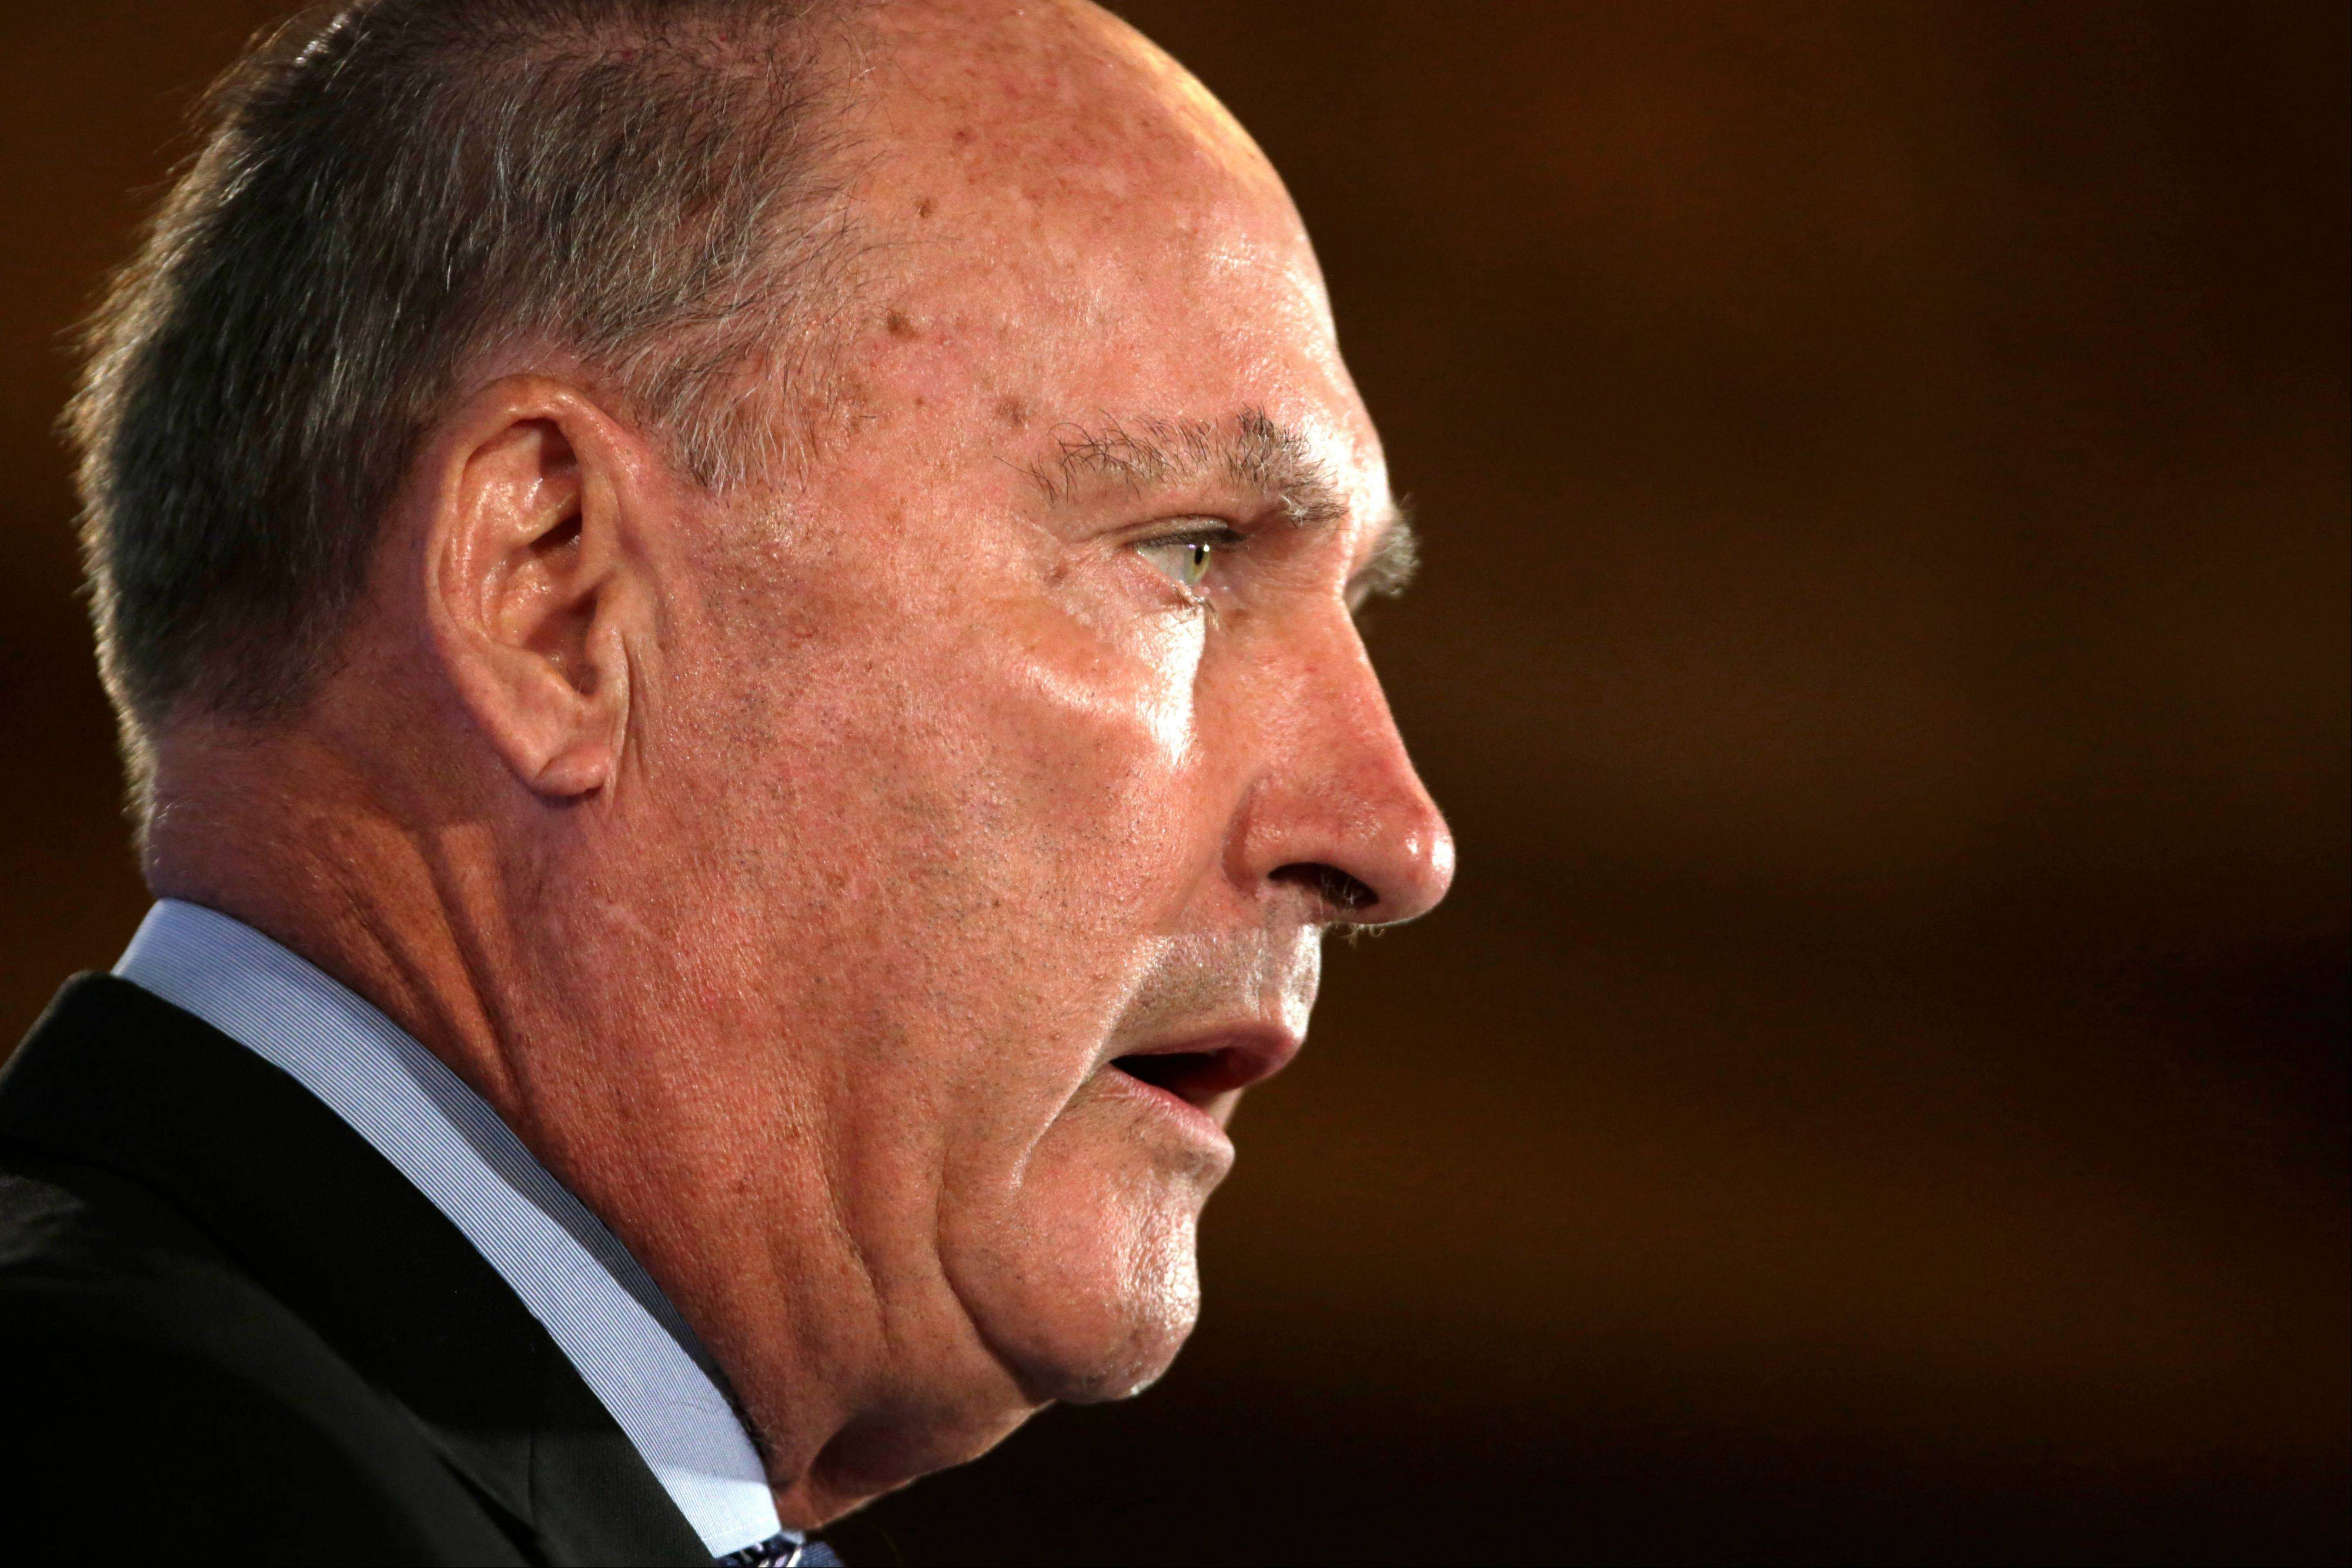 Big Ten Commissioner Jim Delany, speaking at the Big Ten football media conference in Chicago, joined the chorus of major conference commissioners calling for a new model when it comes to the governing body of college athletics.